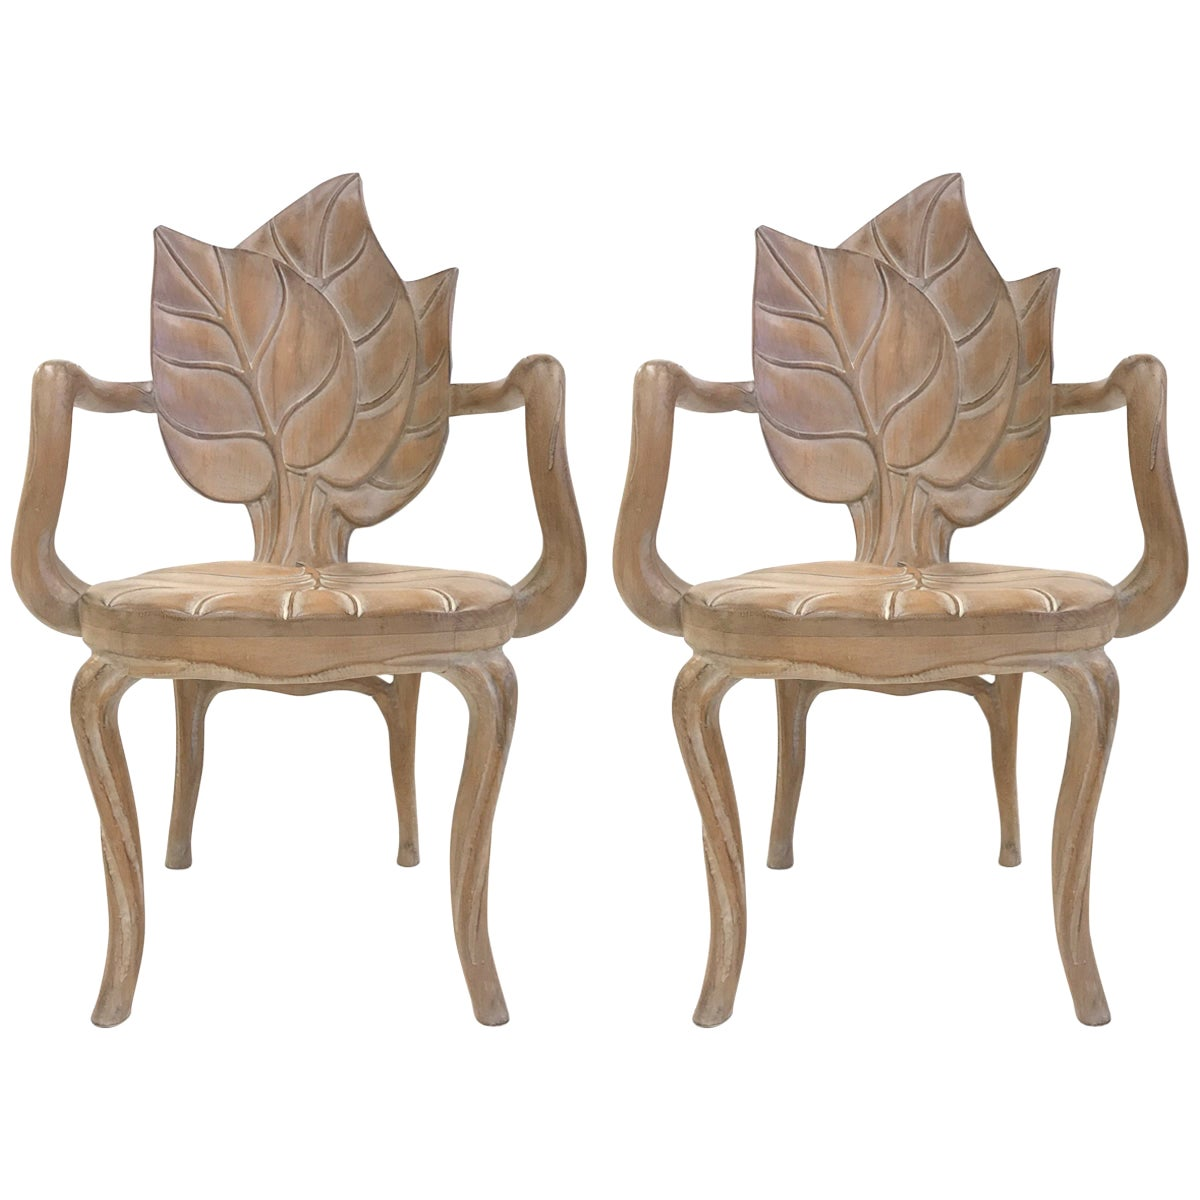 Pair of Bartolozzi & Maioli Carved Wooden Leaf Armchairs